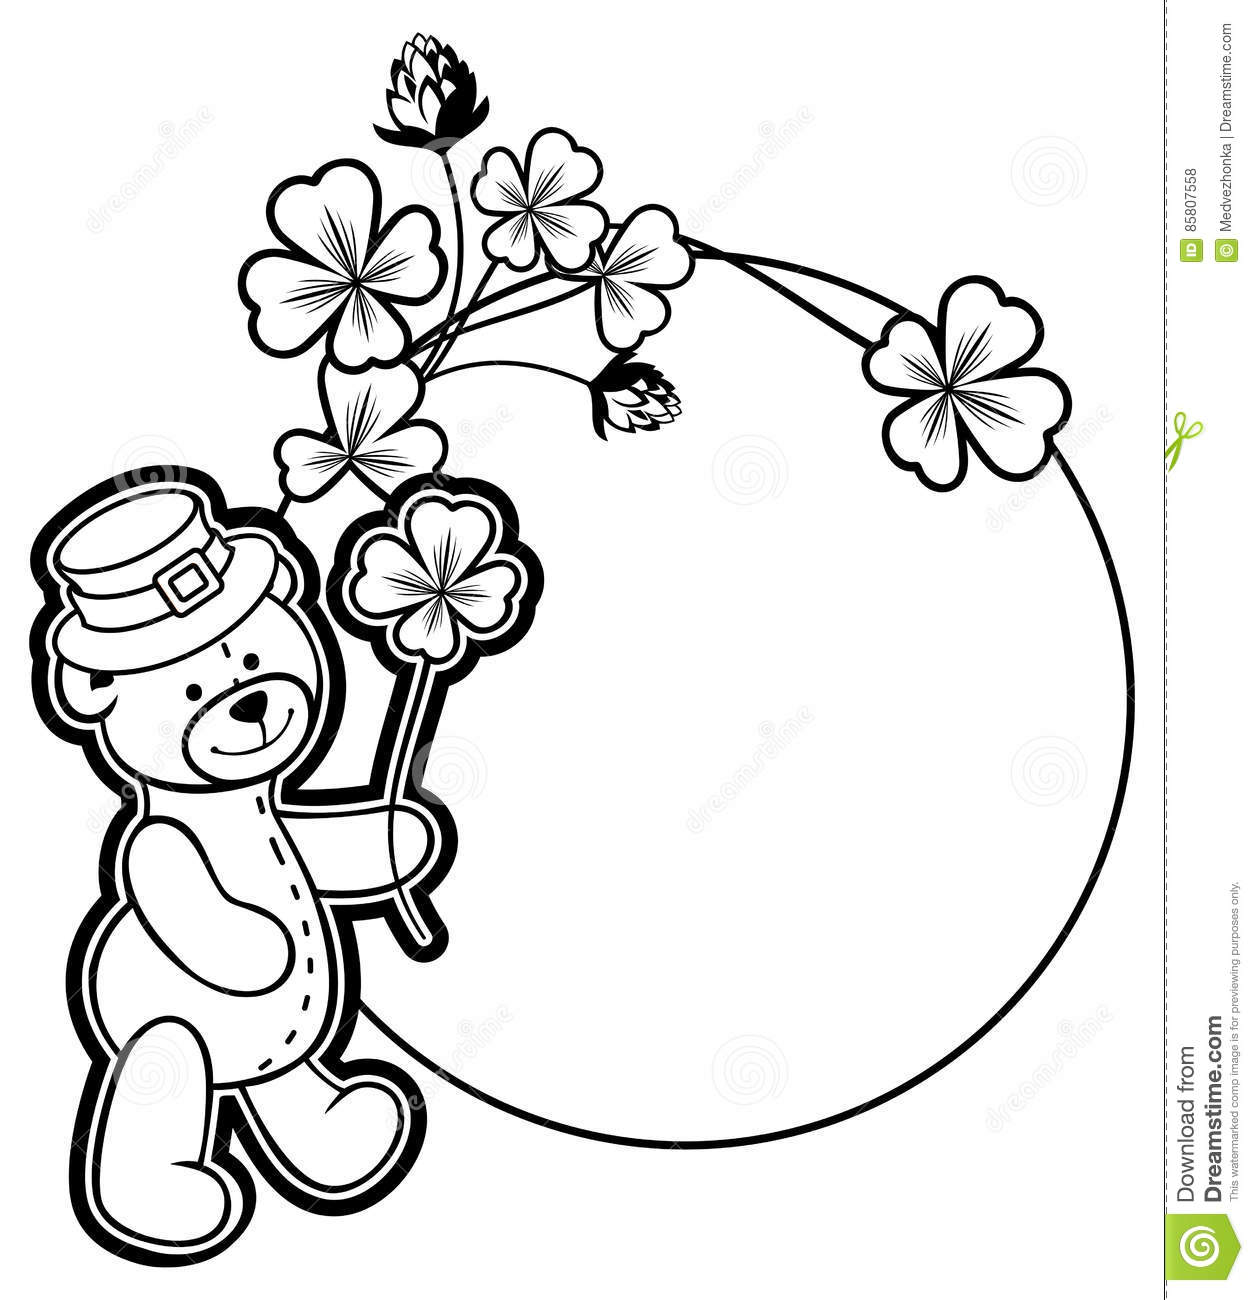 Outline Round Frame With Shamrock Contour And Teddy Bear. Raster.